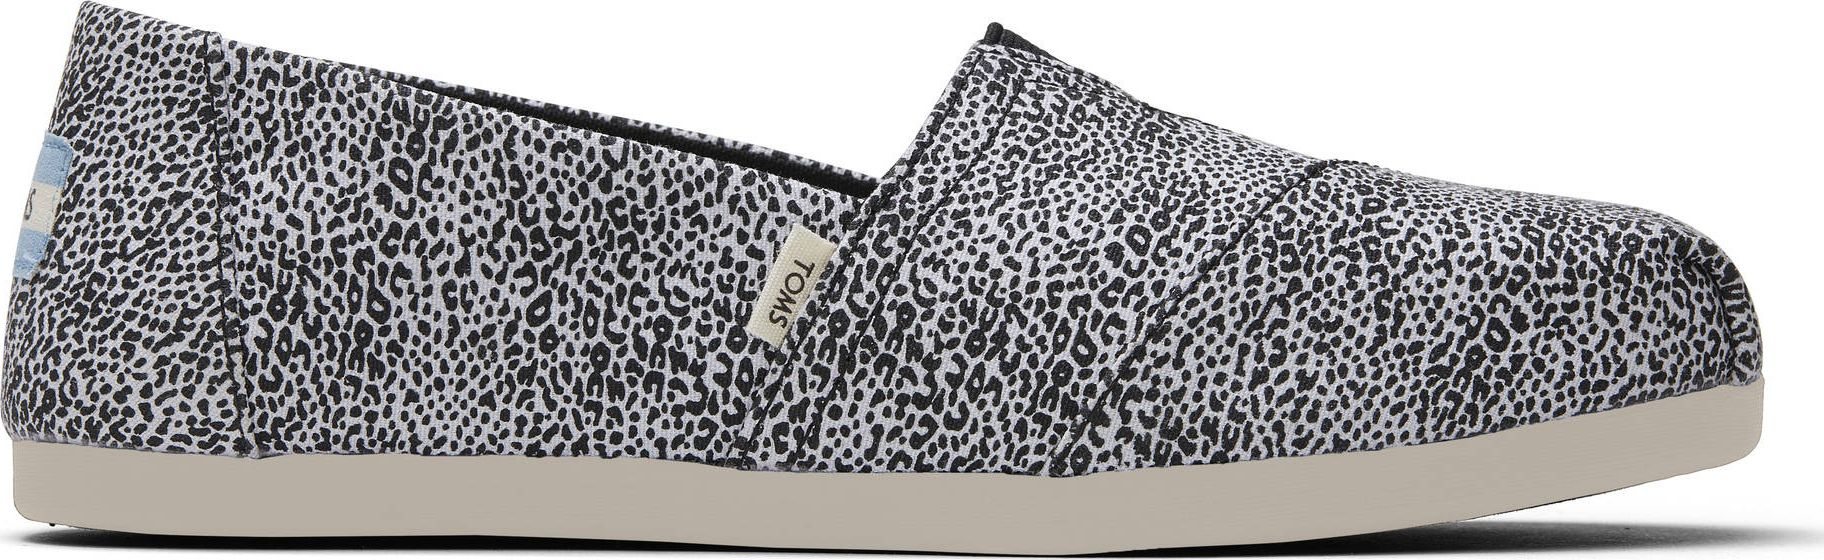 TOMS Mini Leopard Print Canvas Women's Alpargata White 37,5